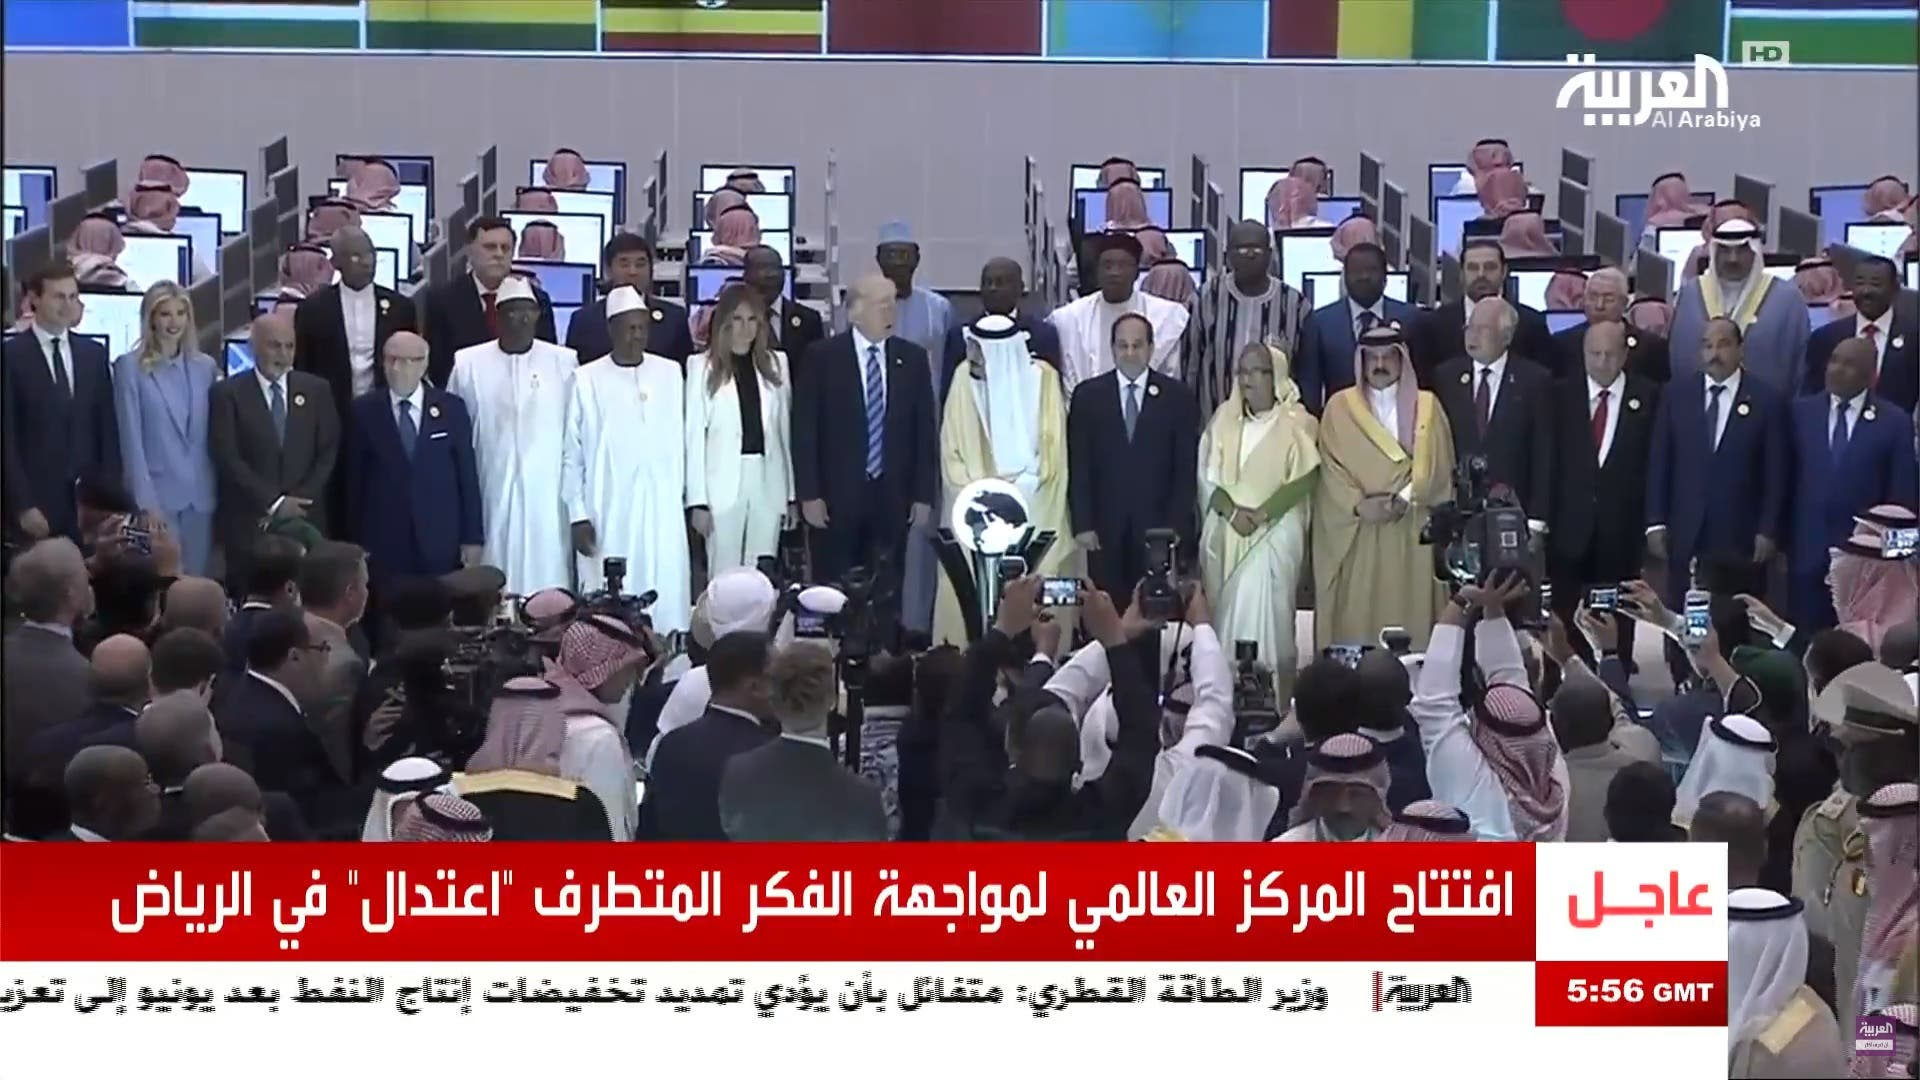 World leaders inaugurate international center to combat terrorism, extremism